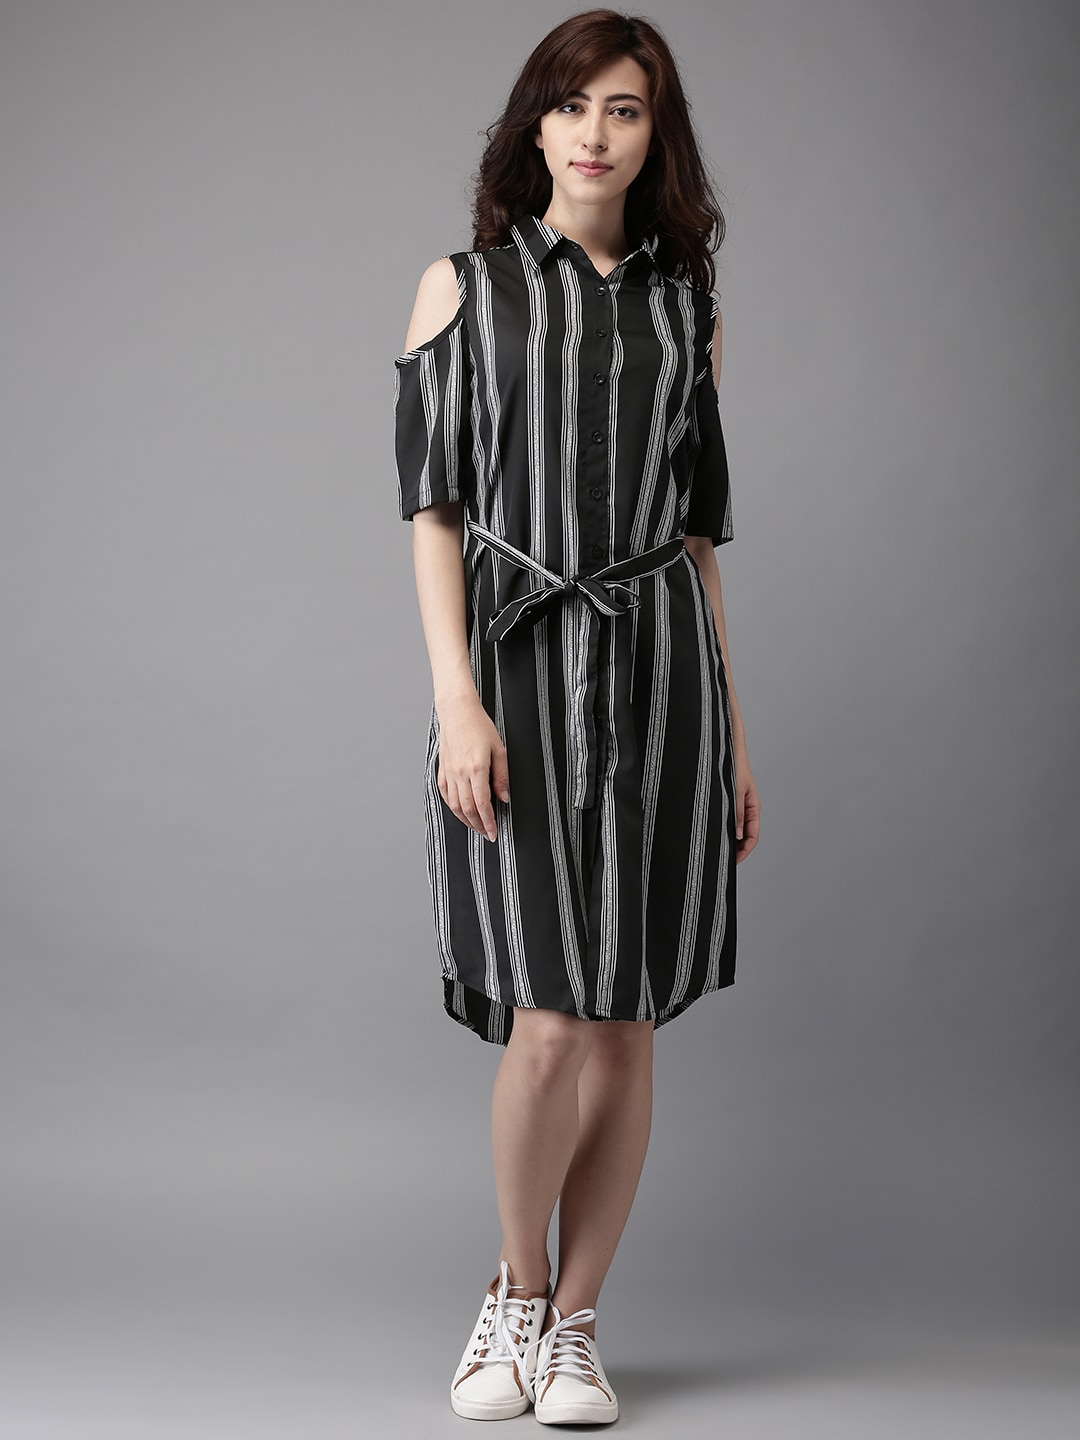 a7c2cff6a73 Striped Dresses - Buy Striped Dresses online in India